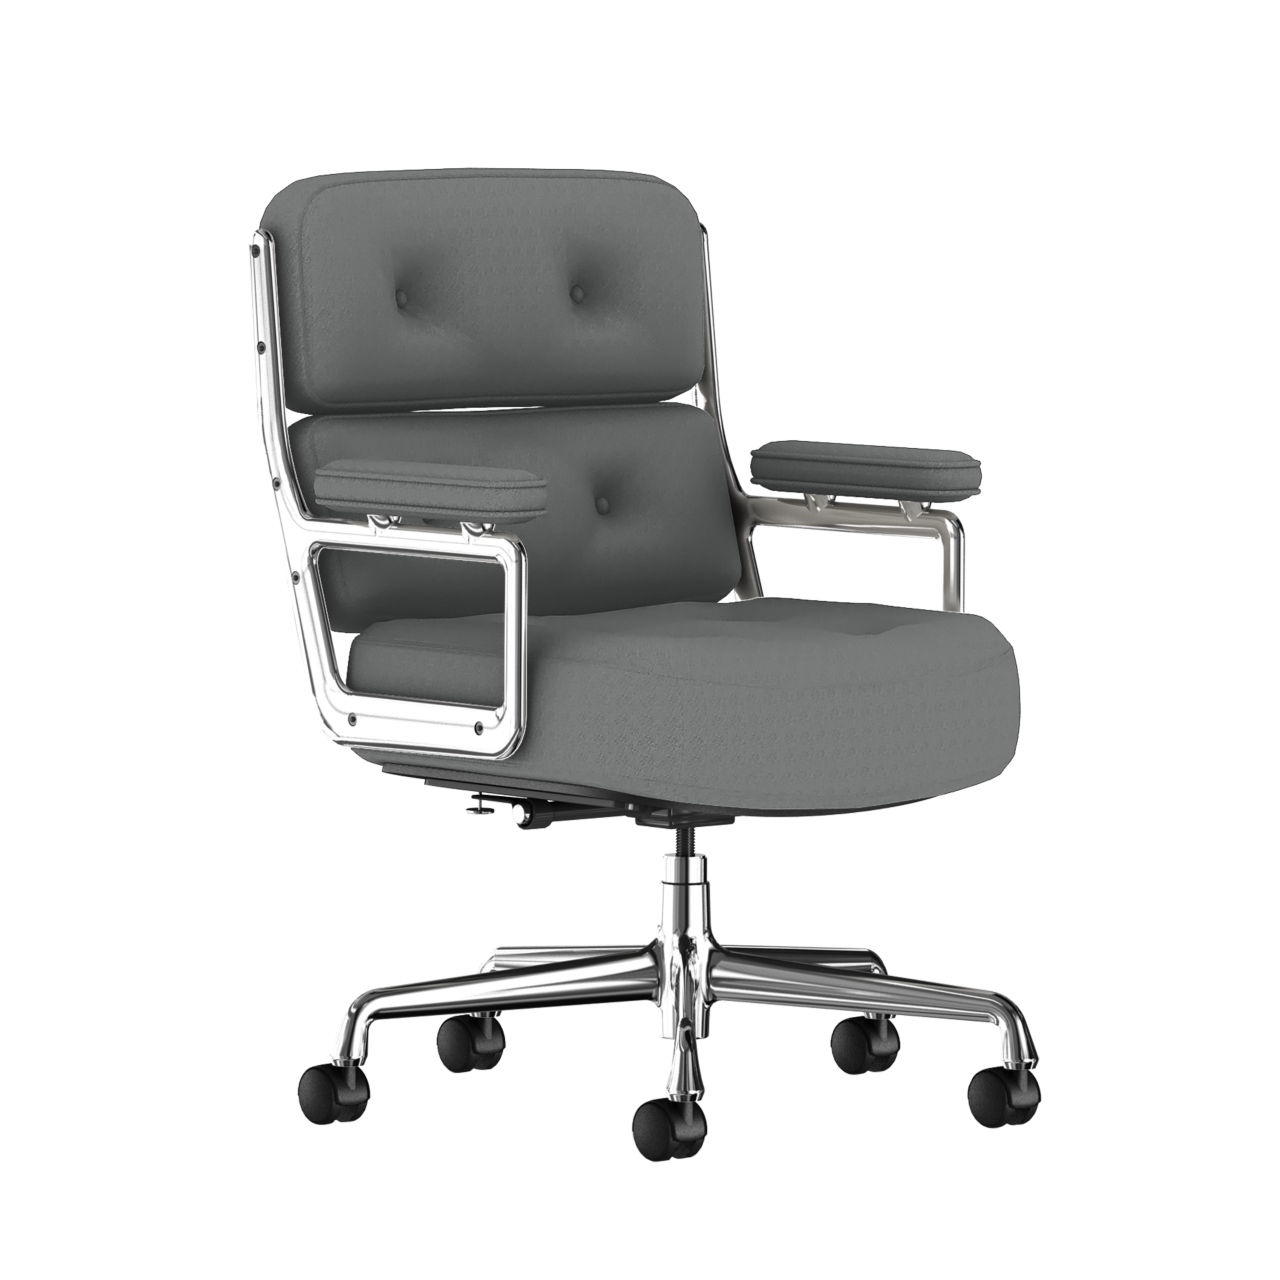 Eames Executive Work Chair Fabric in Slate Grey by Herman Miller